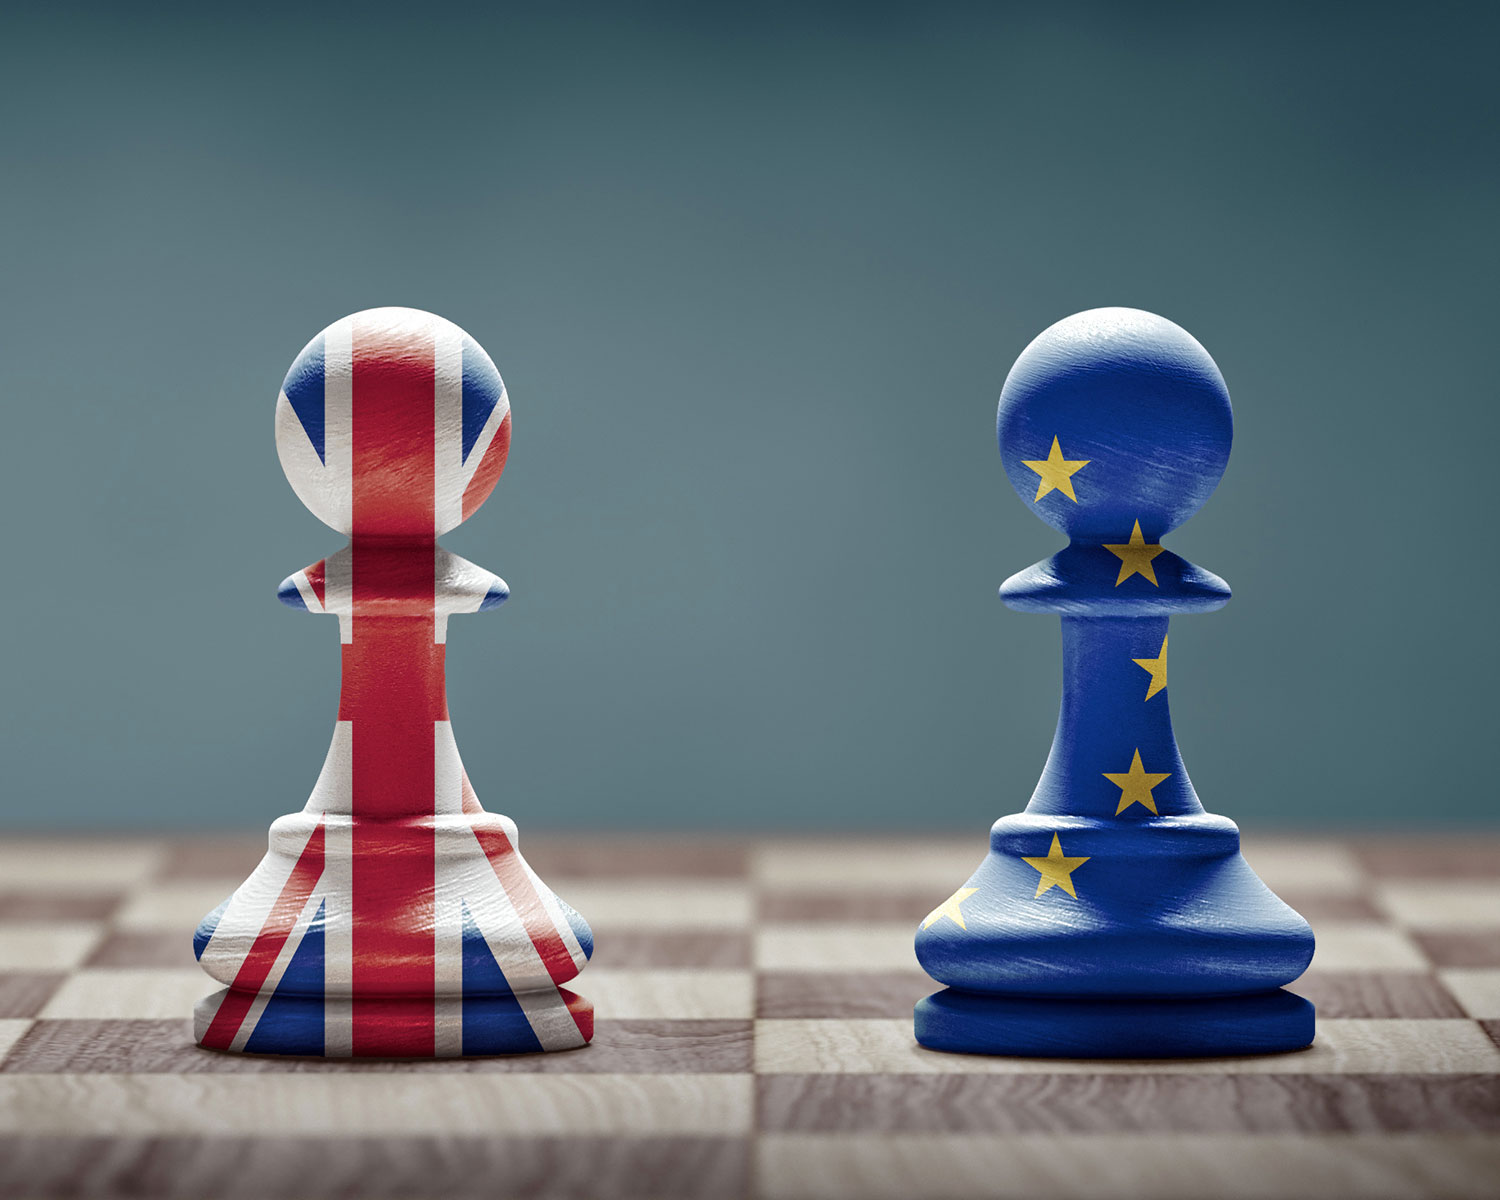 EU UK trade talks impact on exchange rate. Brexit concept. United Kingdom and European Union flags on chess pawns.